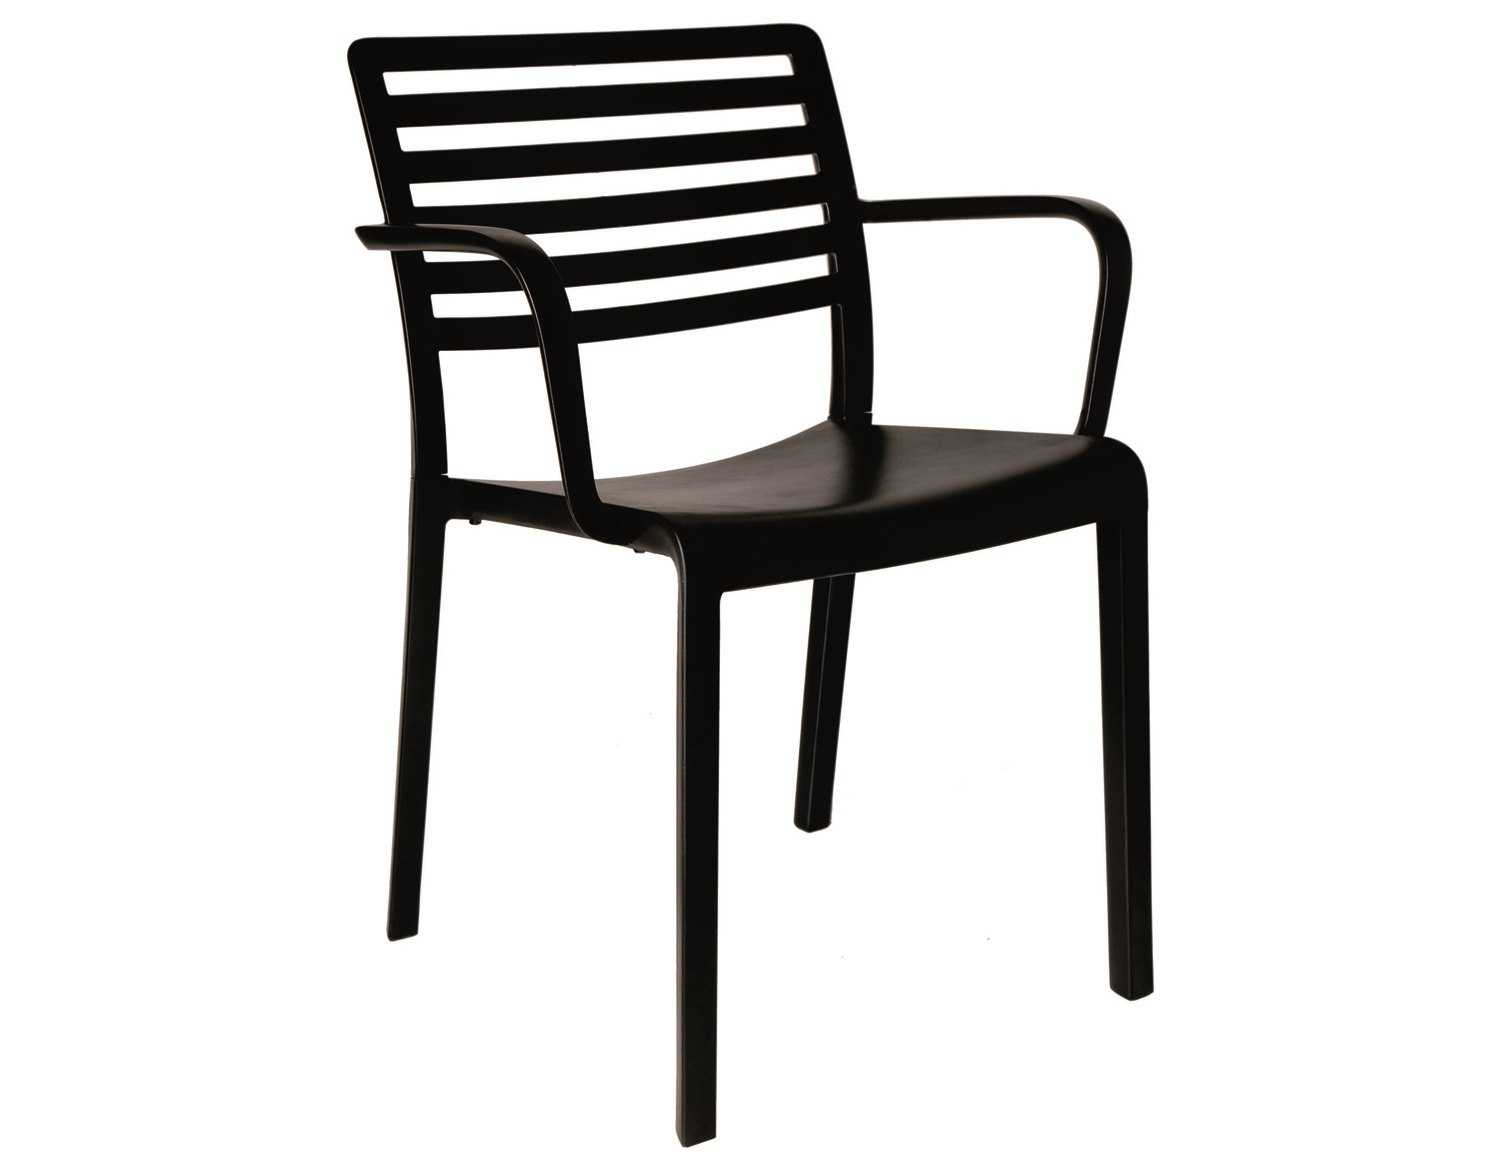 resols resol lama recycled plastic black arm chair lisboa in the  resol lama recycled plastic black arm chair zoom